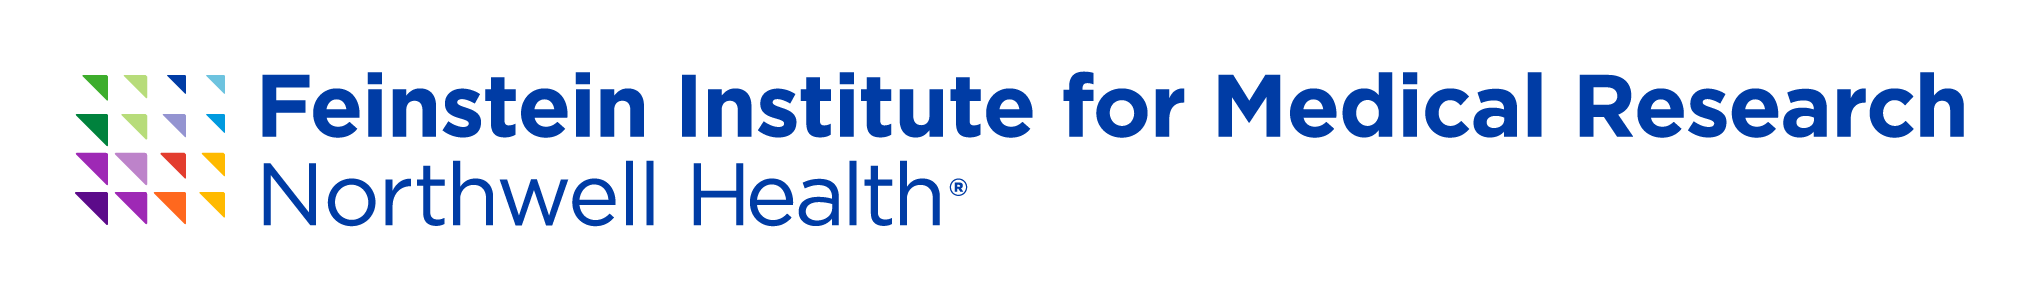 Northwell Health, GE Ventures Form $200M Alliance to Develop, Commercialize Solutions in Bioelectronic Medicine